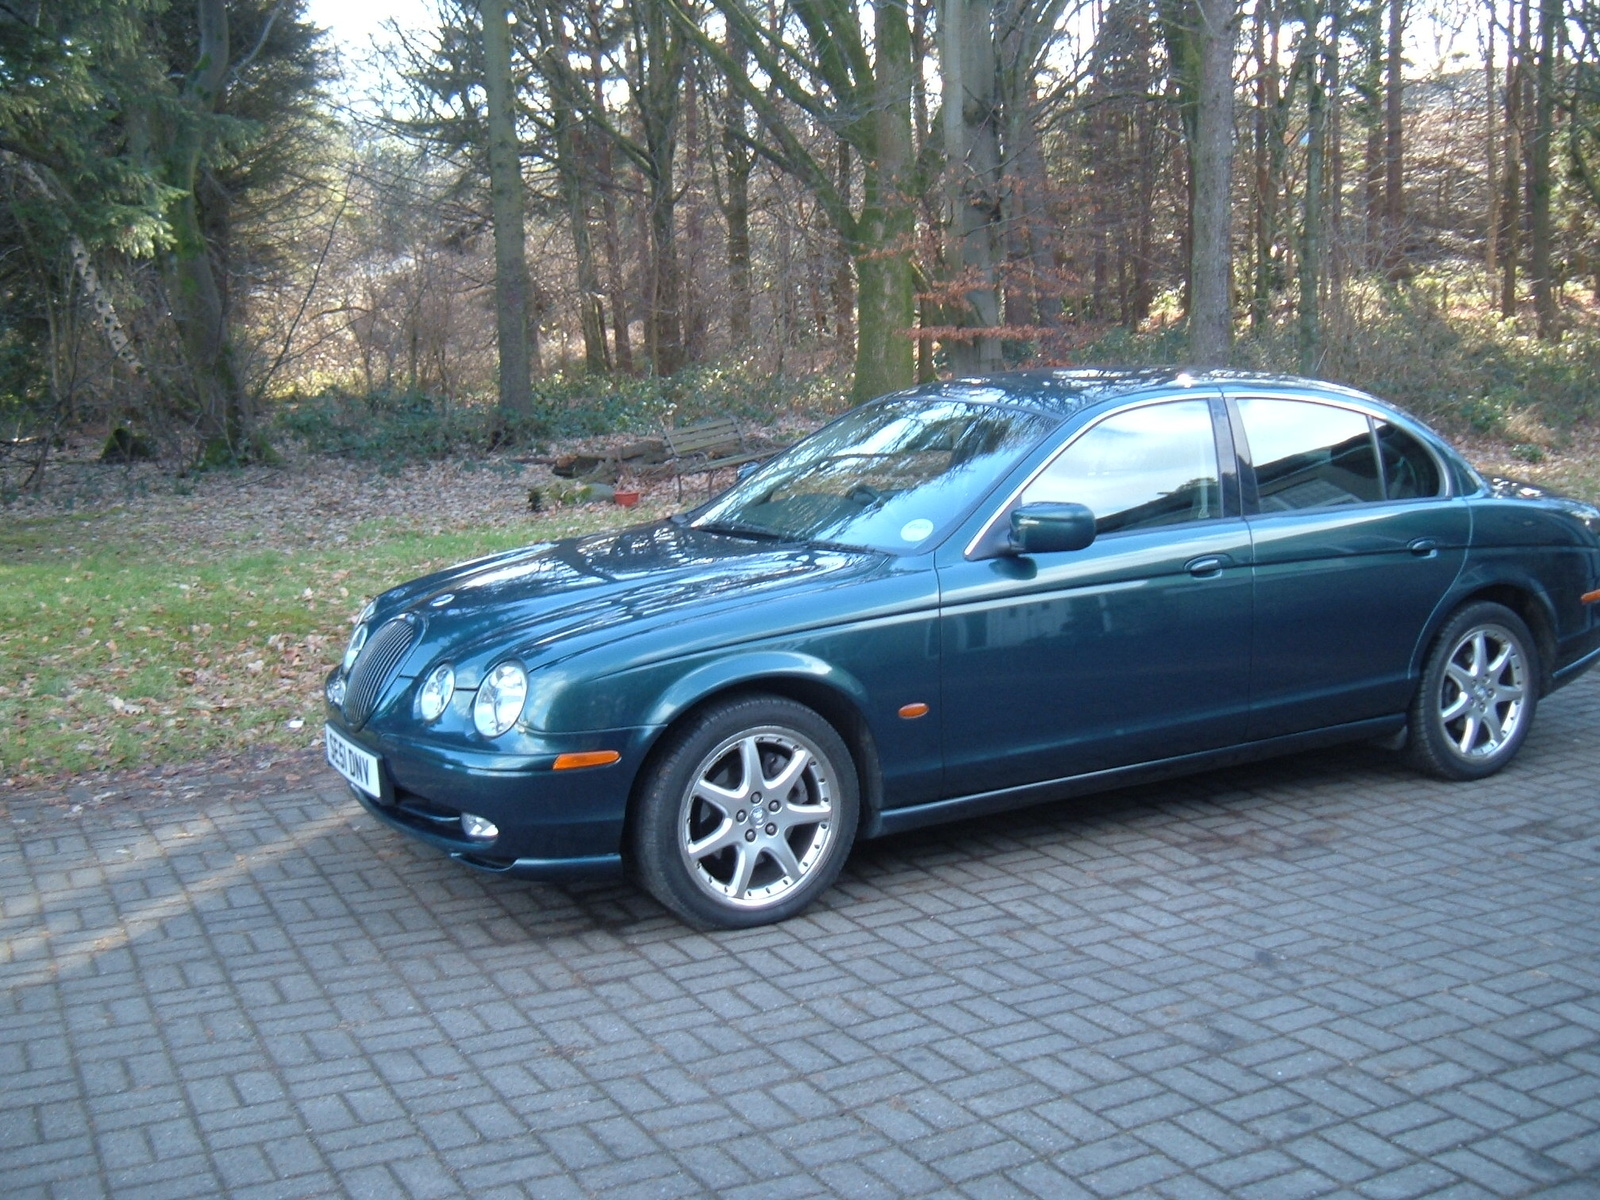 2002 Jaguar S-Type 3.0 picture